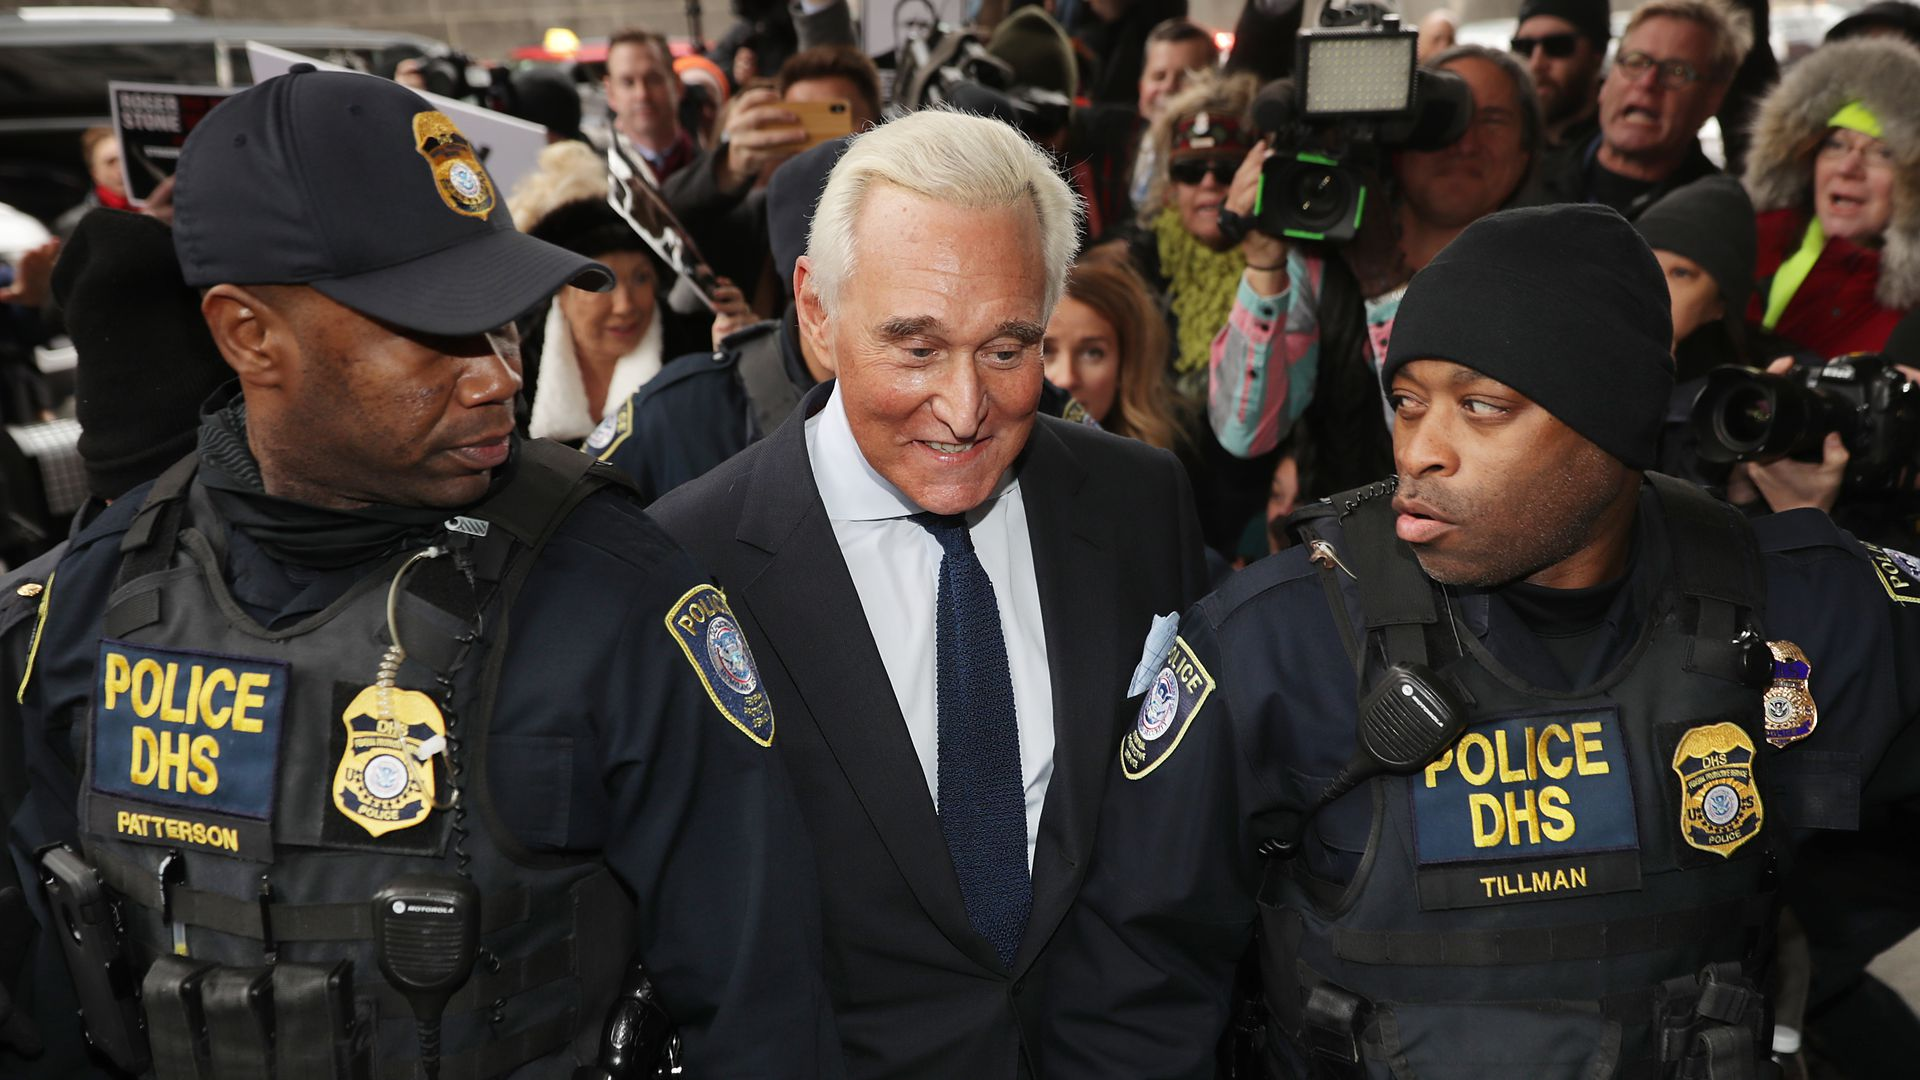 Roger Stone between to law enforcement officers.